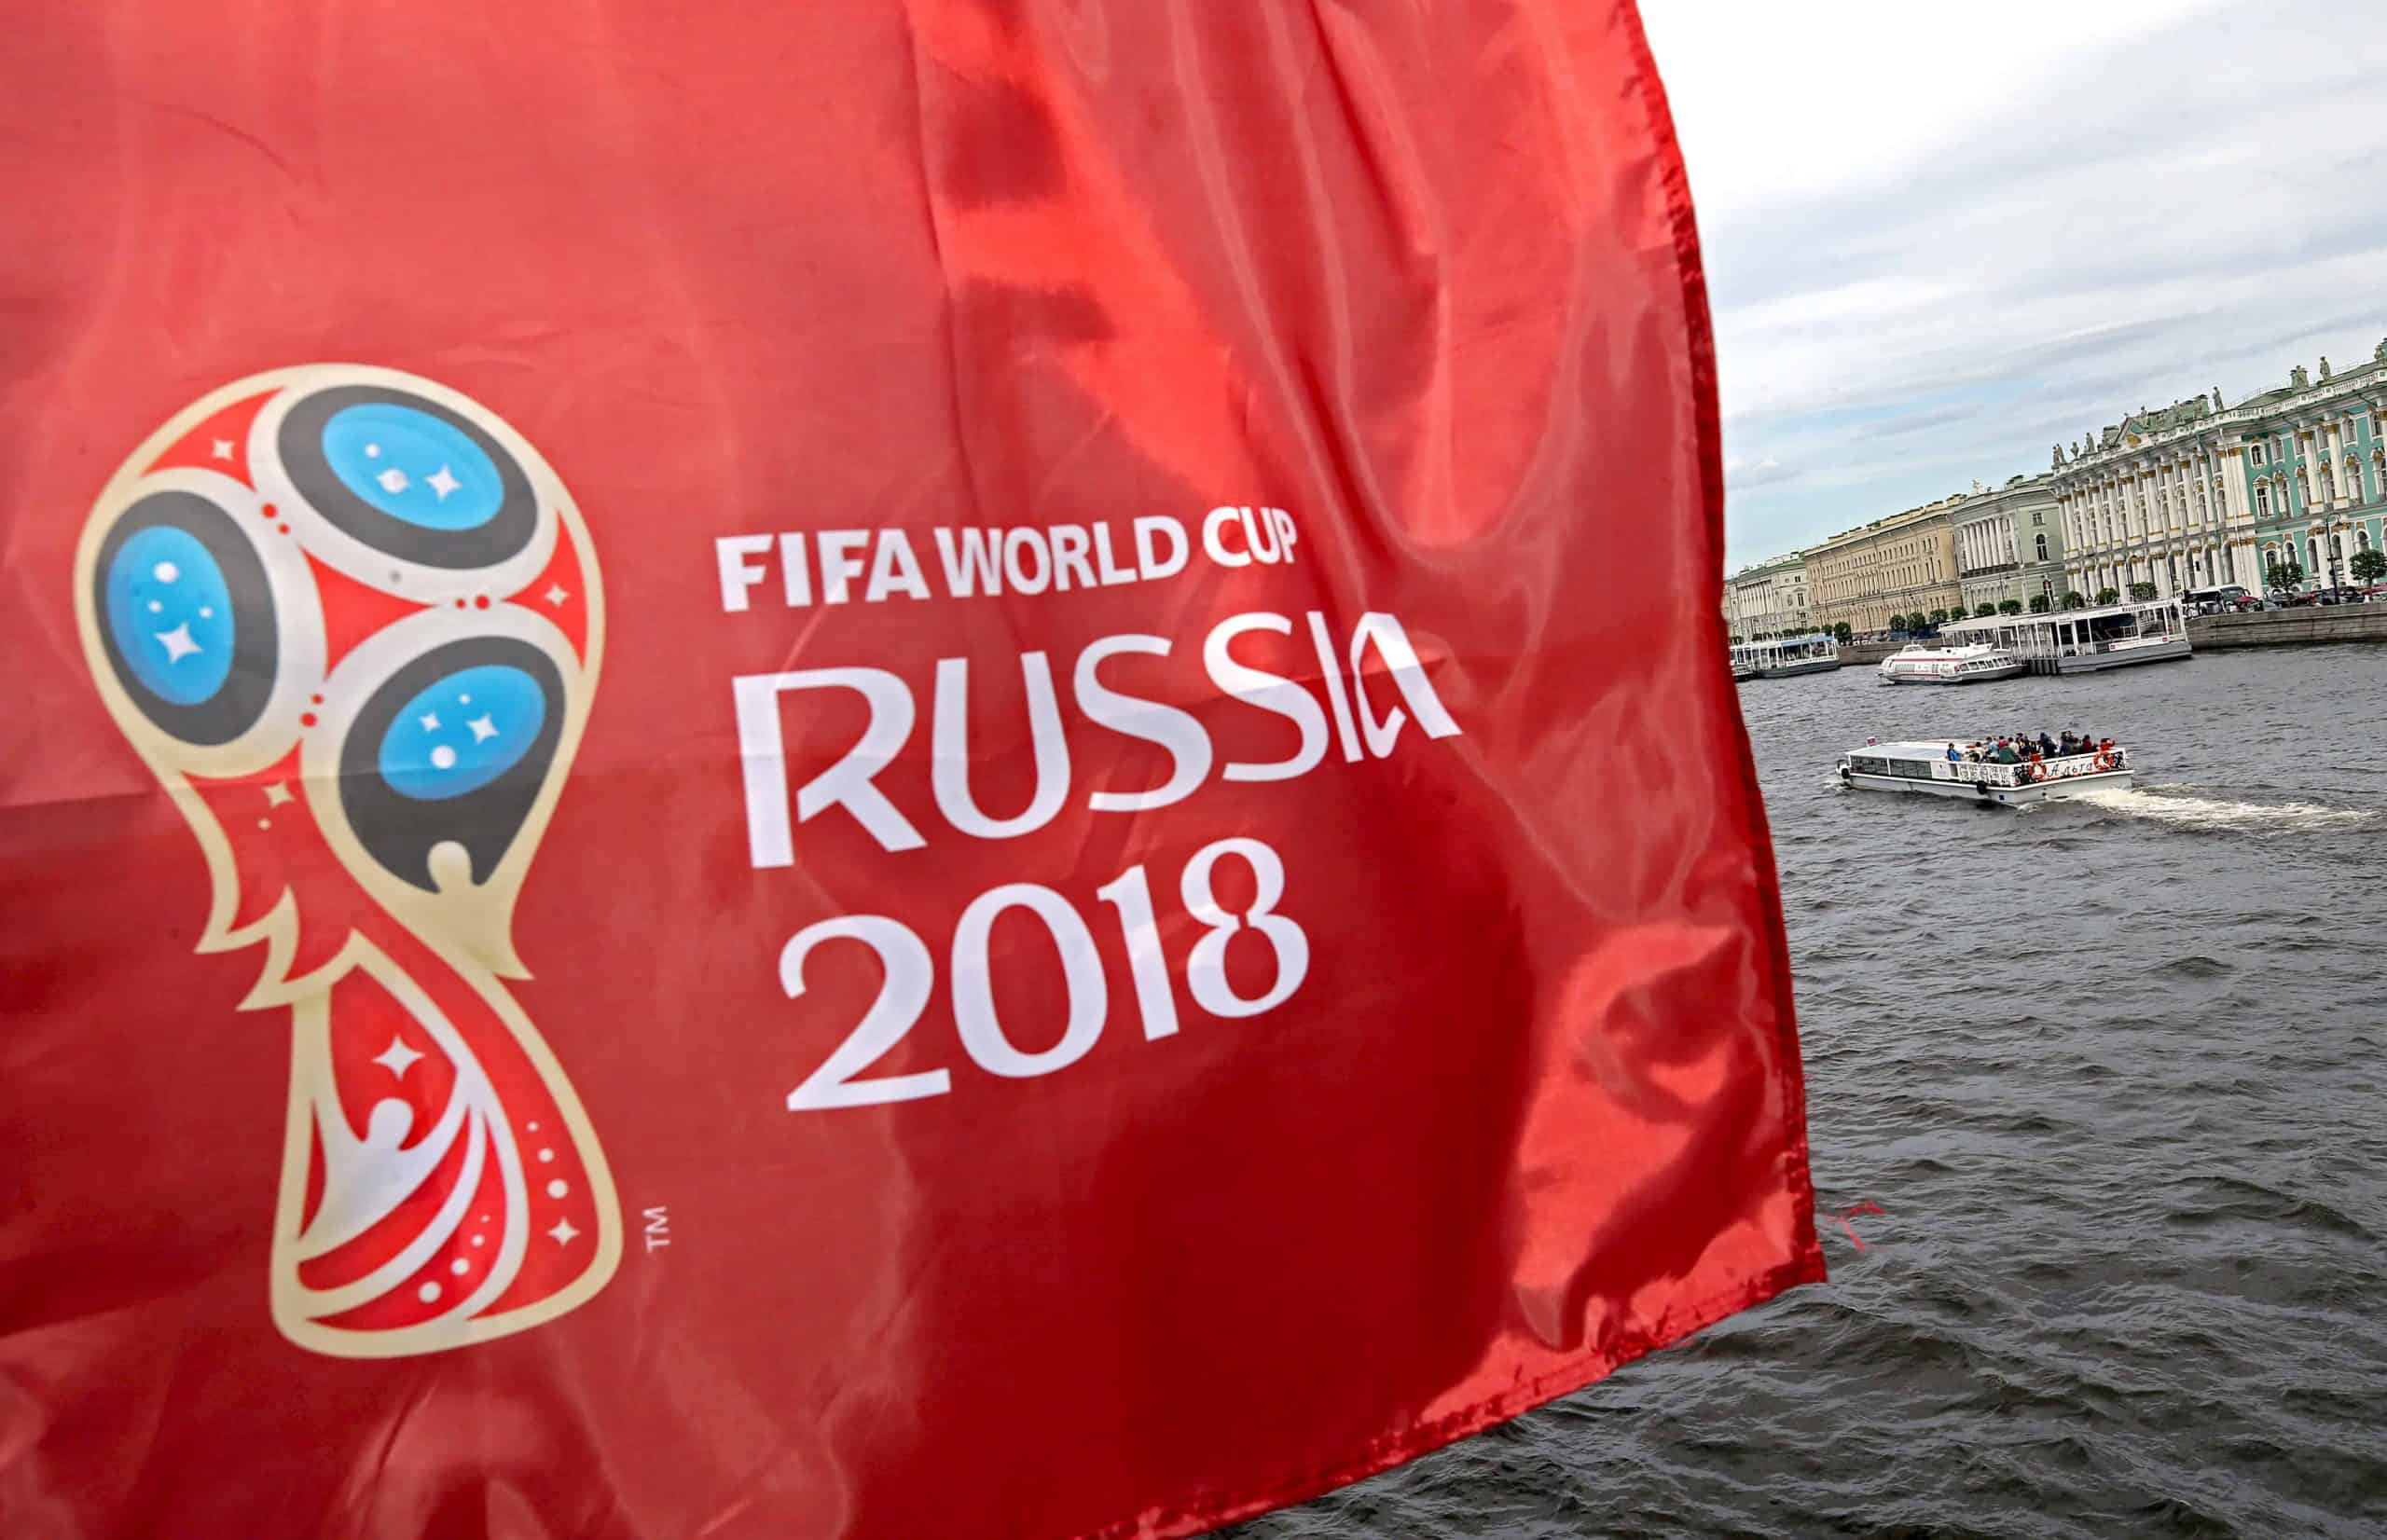 FIFA World Cup Russia 2018 flag (Alexander Demianchuk/Tass/PA Images)